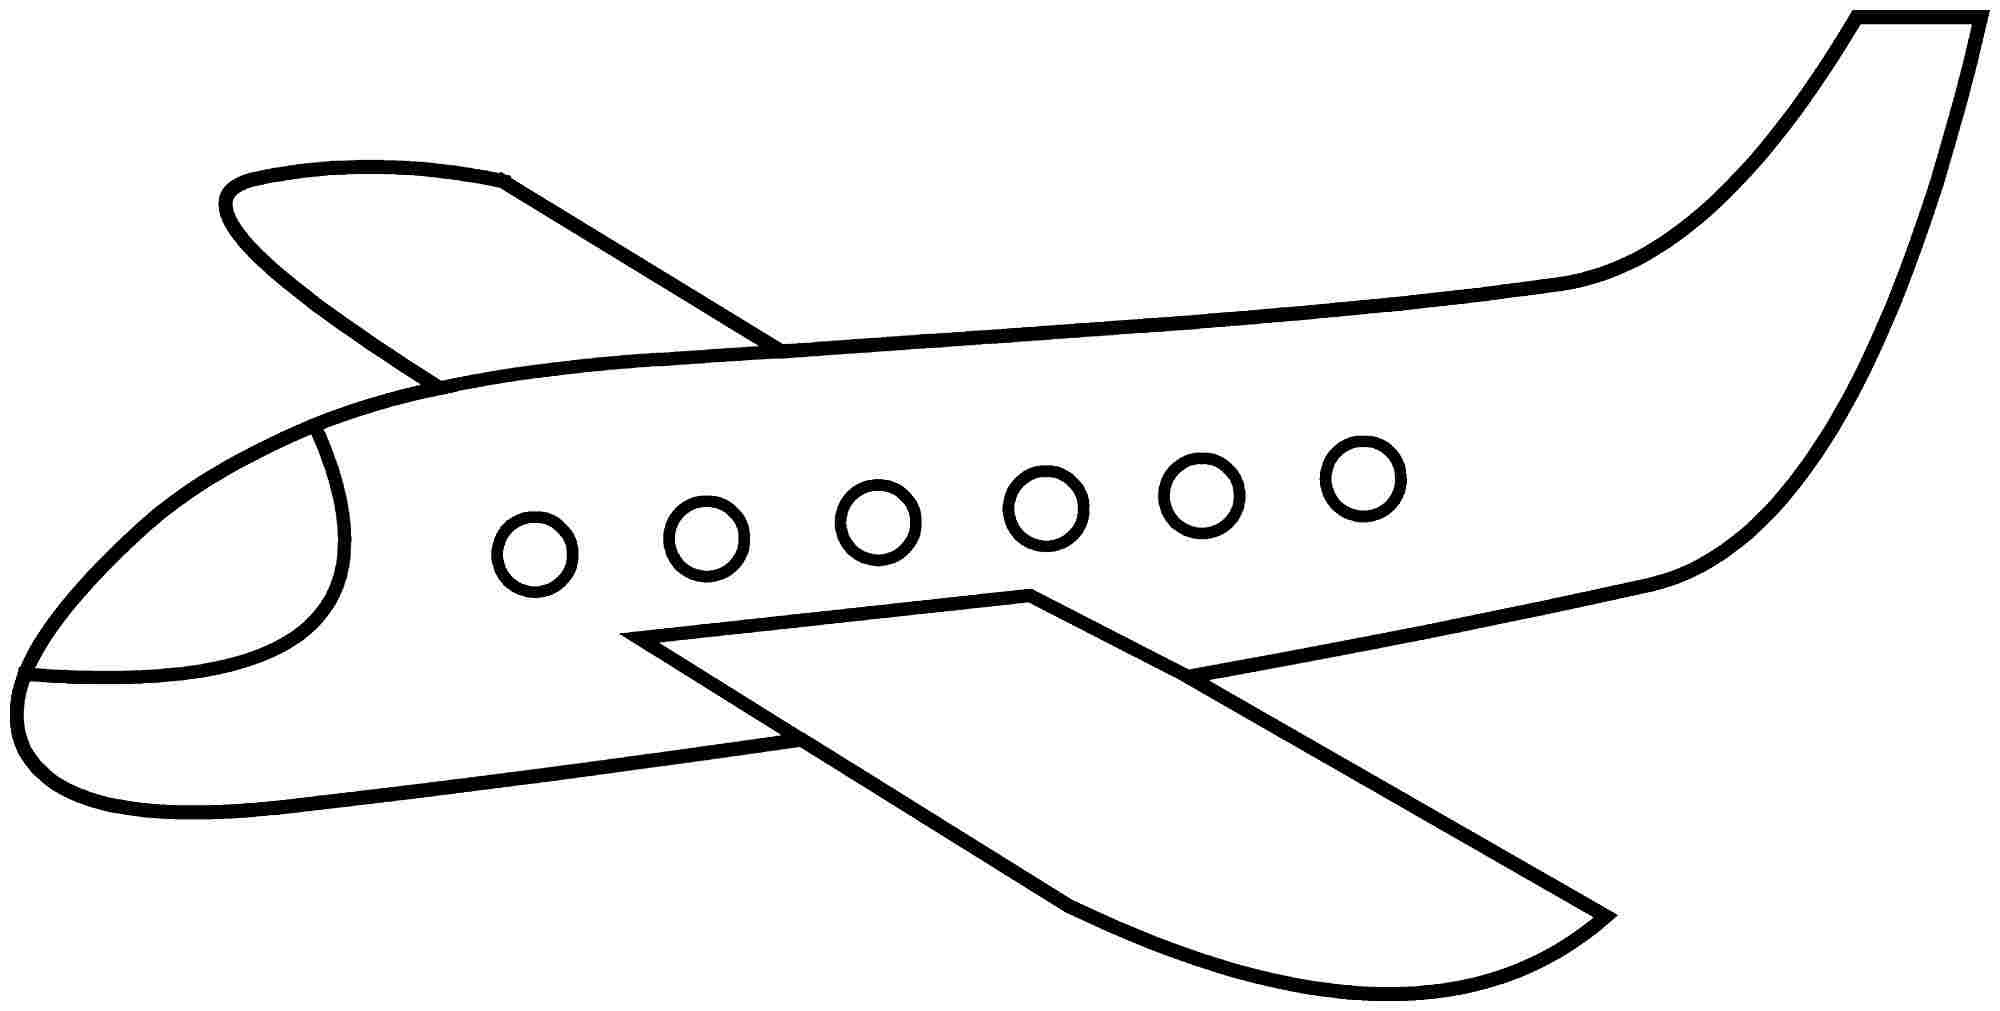 coloring pages airplanes top 35 airplane coloring pages your toddler will love coloring pages airplanes